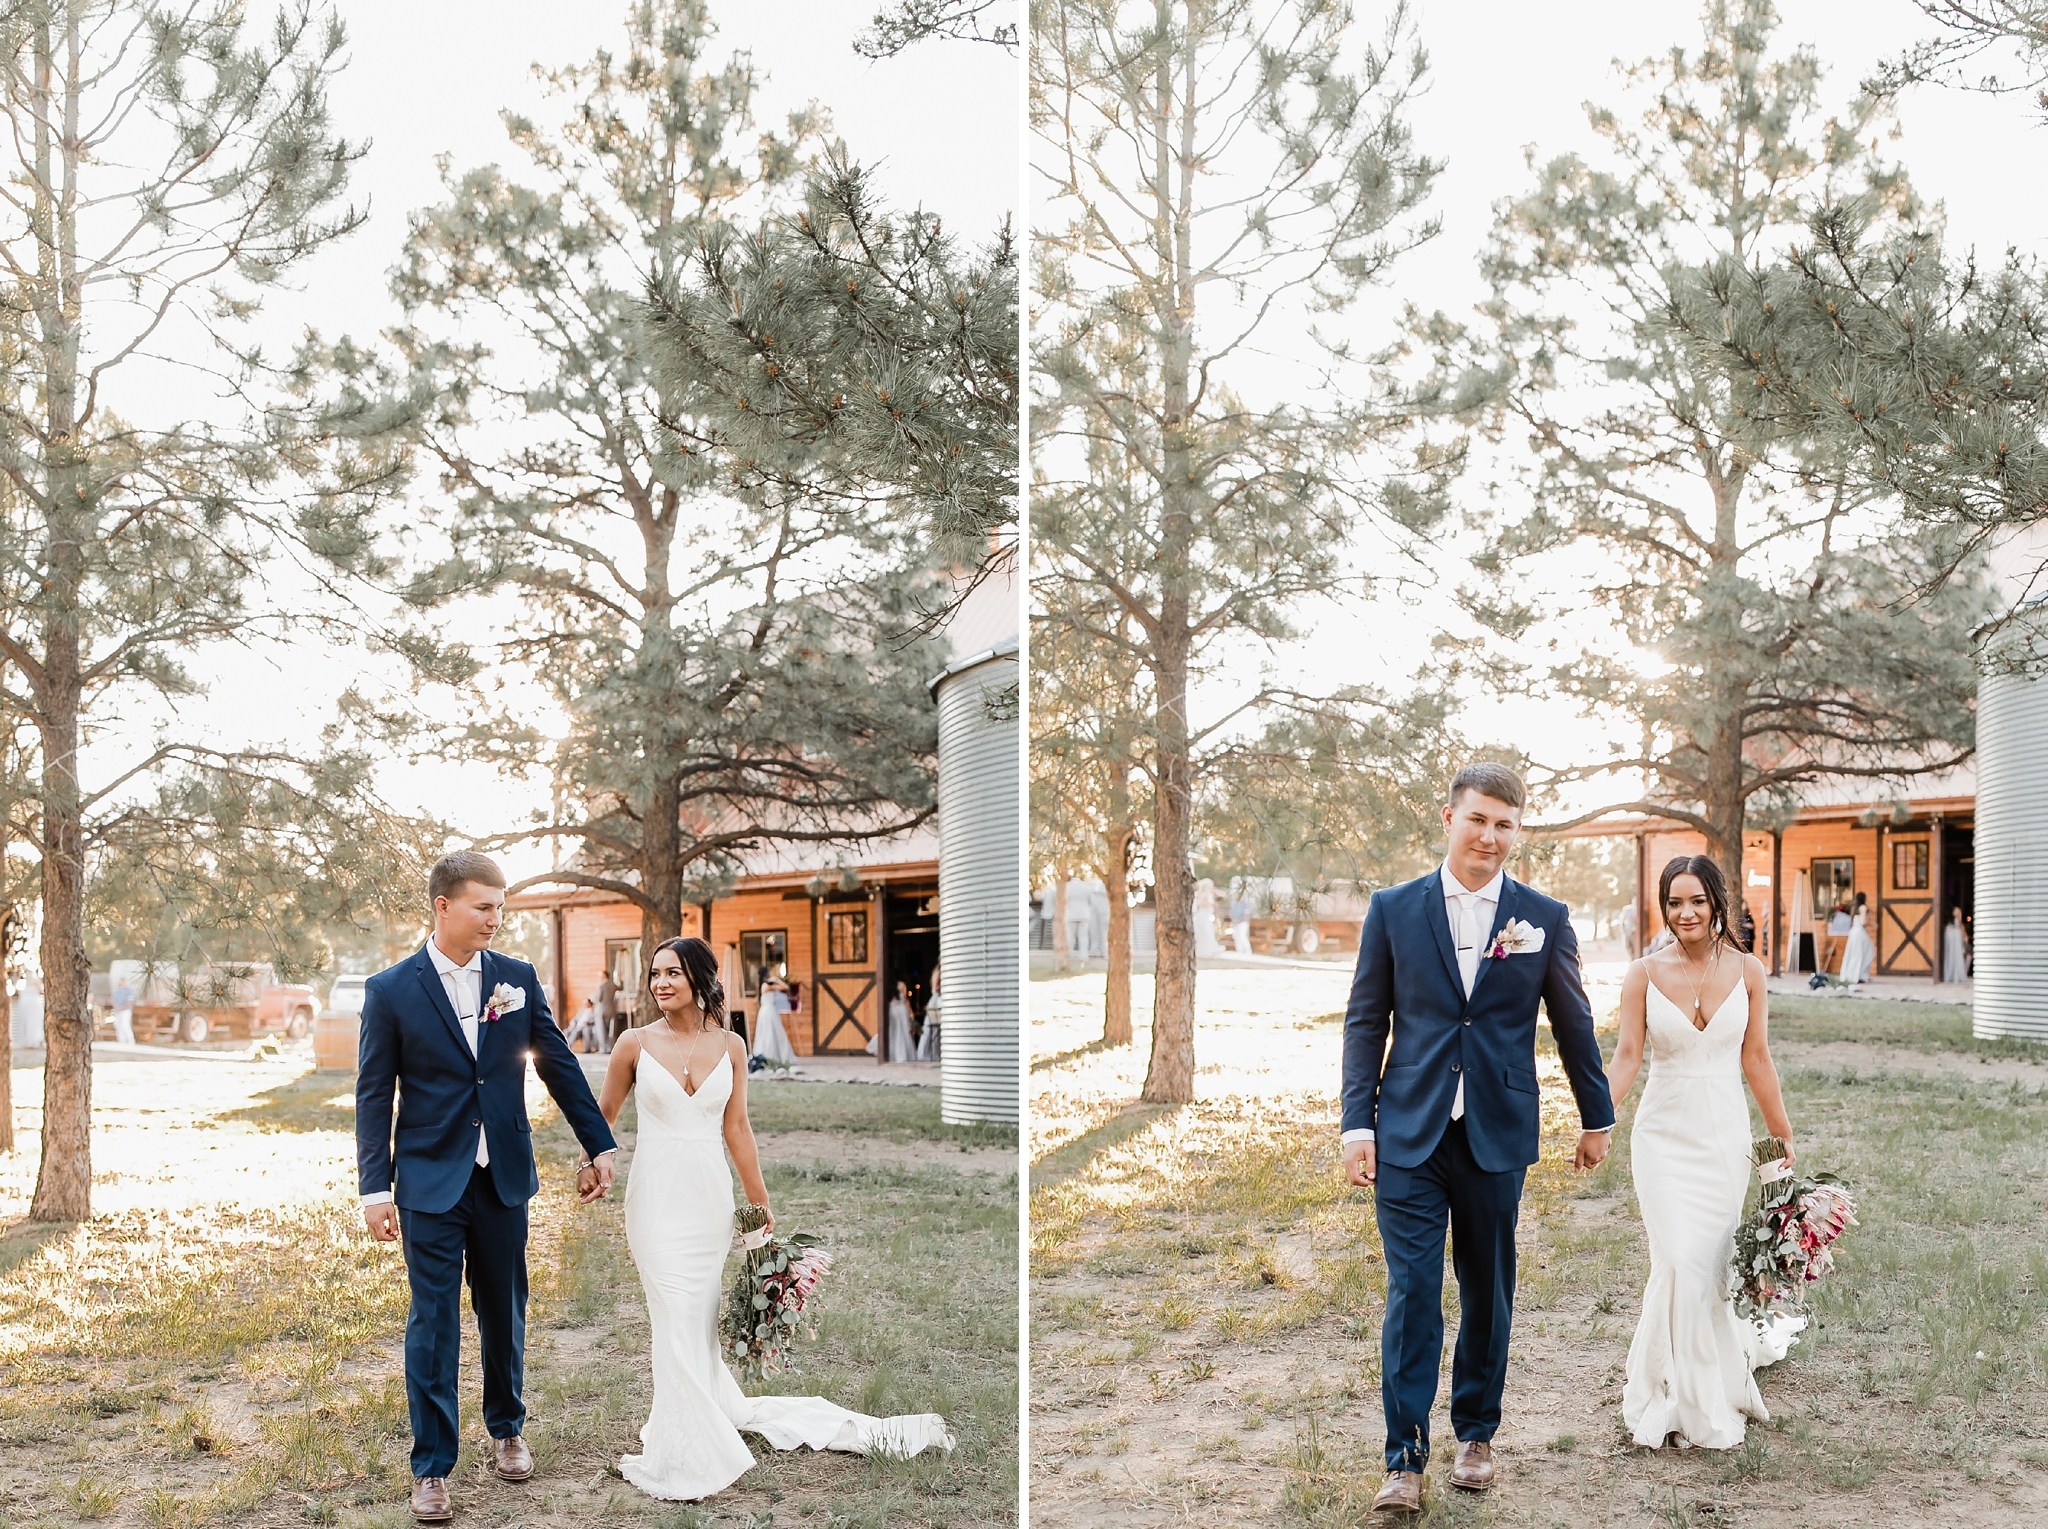 Alicia+lucia+photography+-+albuquerque+wedding+photographer+-+santa+fe+wedding+photography+-+new+mexico+wedding+photographer+-+new+mexico+wedding+-+new+mexico+wedding+-+barn+wedding+-+enchanted+vine+barn+wedding+-+ruidoso+wedding_0128.jpg